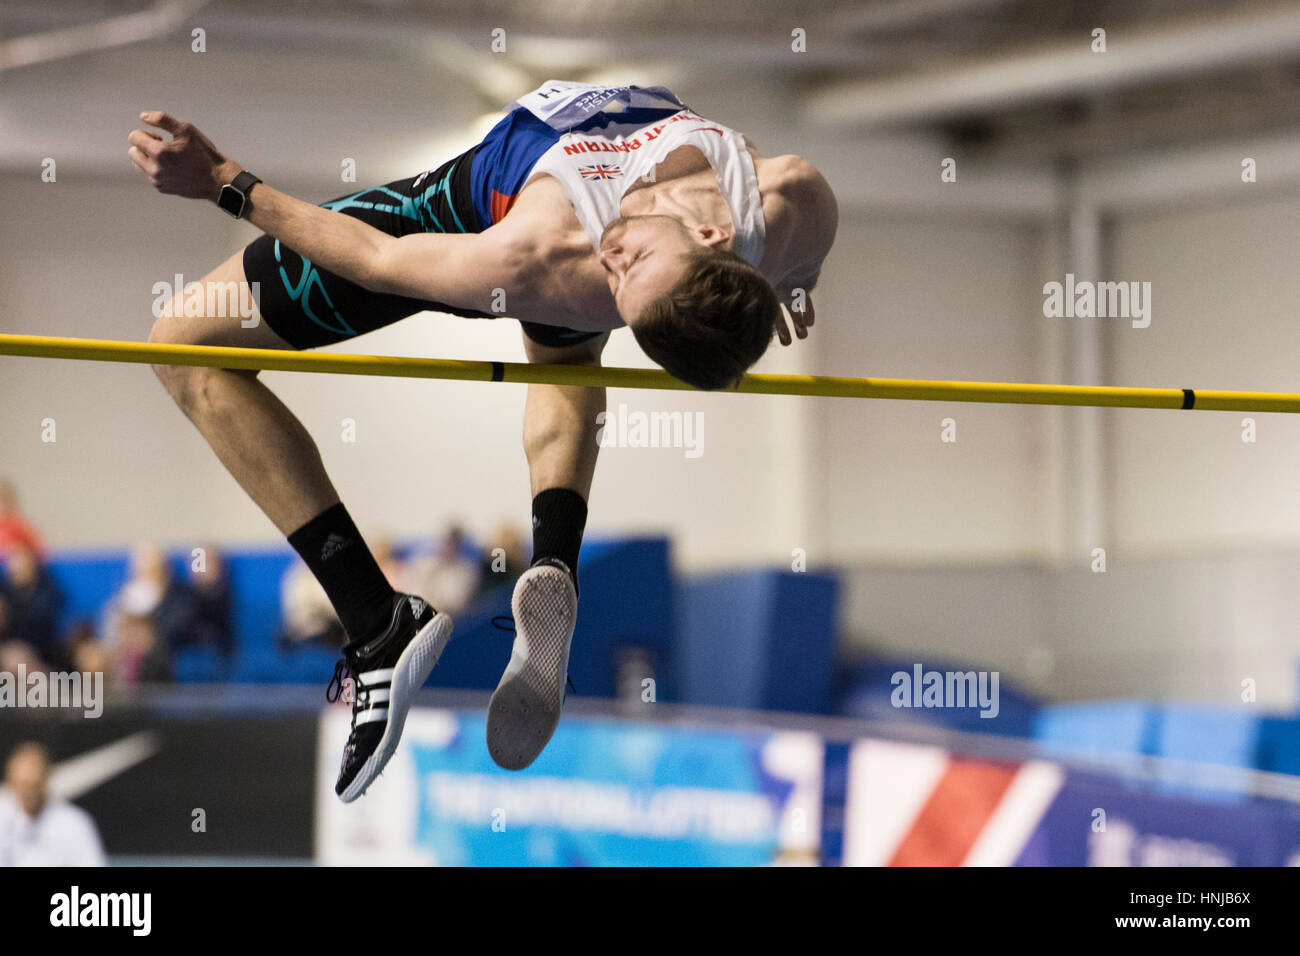 Allan Smith won the high jump at the British Athletics Indoor Team Trials at the English Institute of Sport, Sheffield, - Stock Image